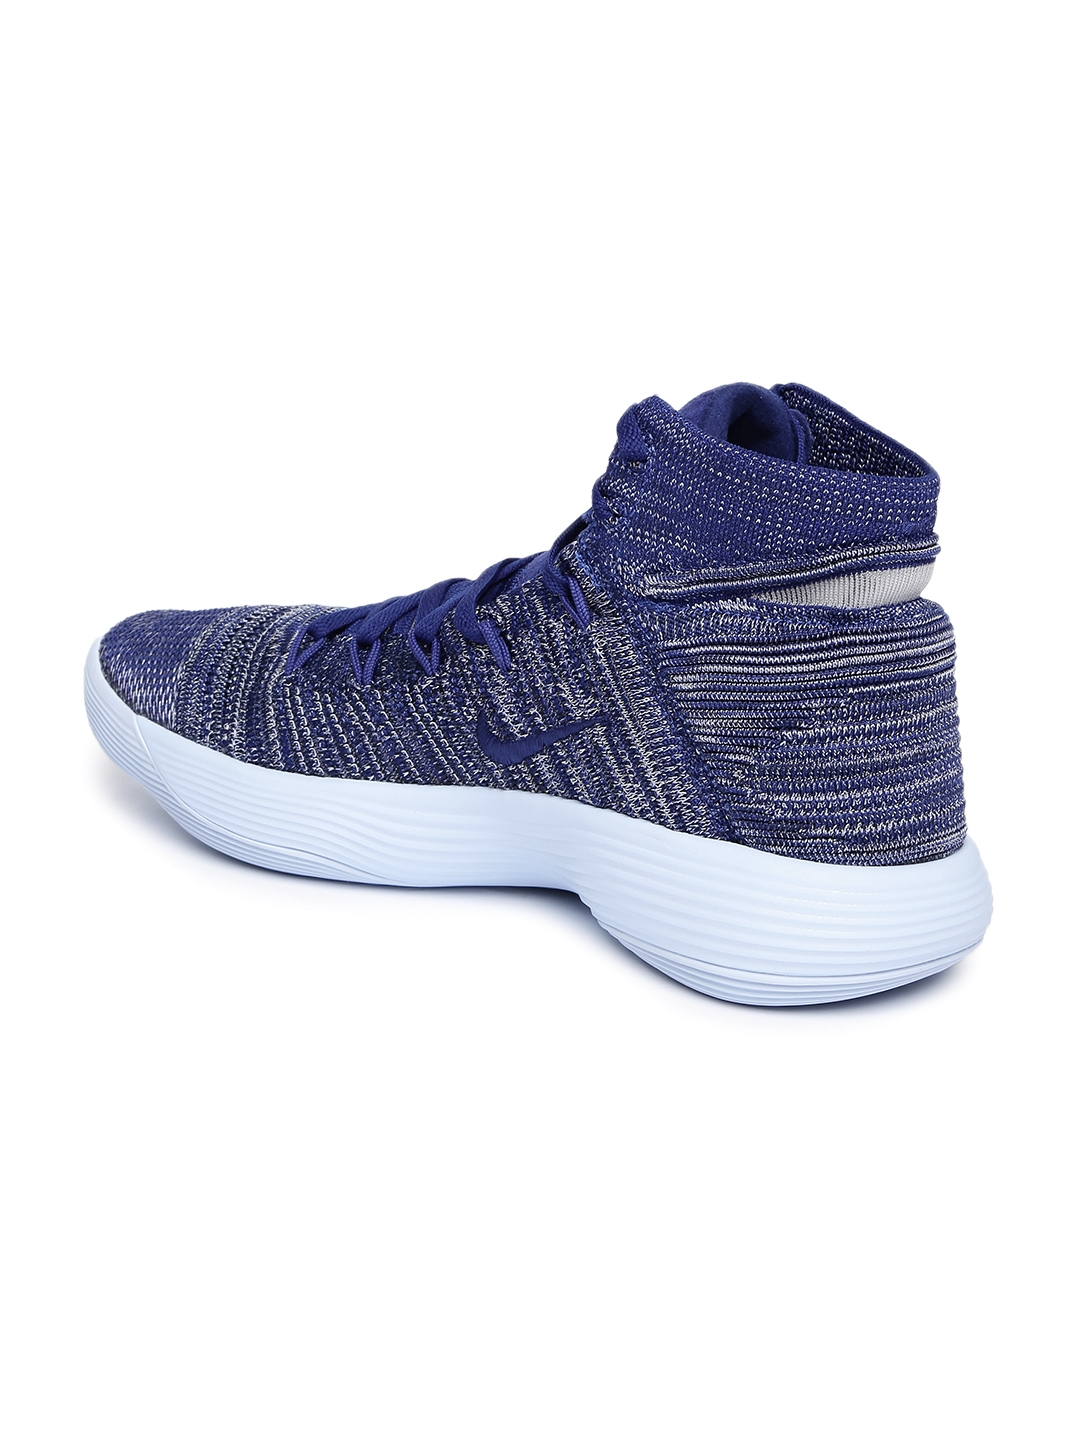 39a0133d8e78 Buy Nike Men Blue HYPERDUNK 2017 FLYKNIT Basketball Shoes - Sports ...